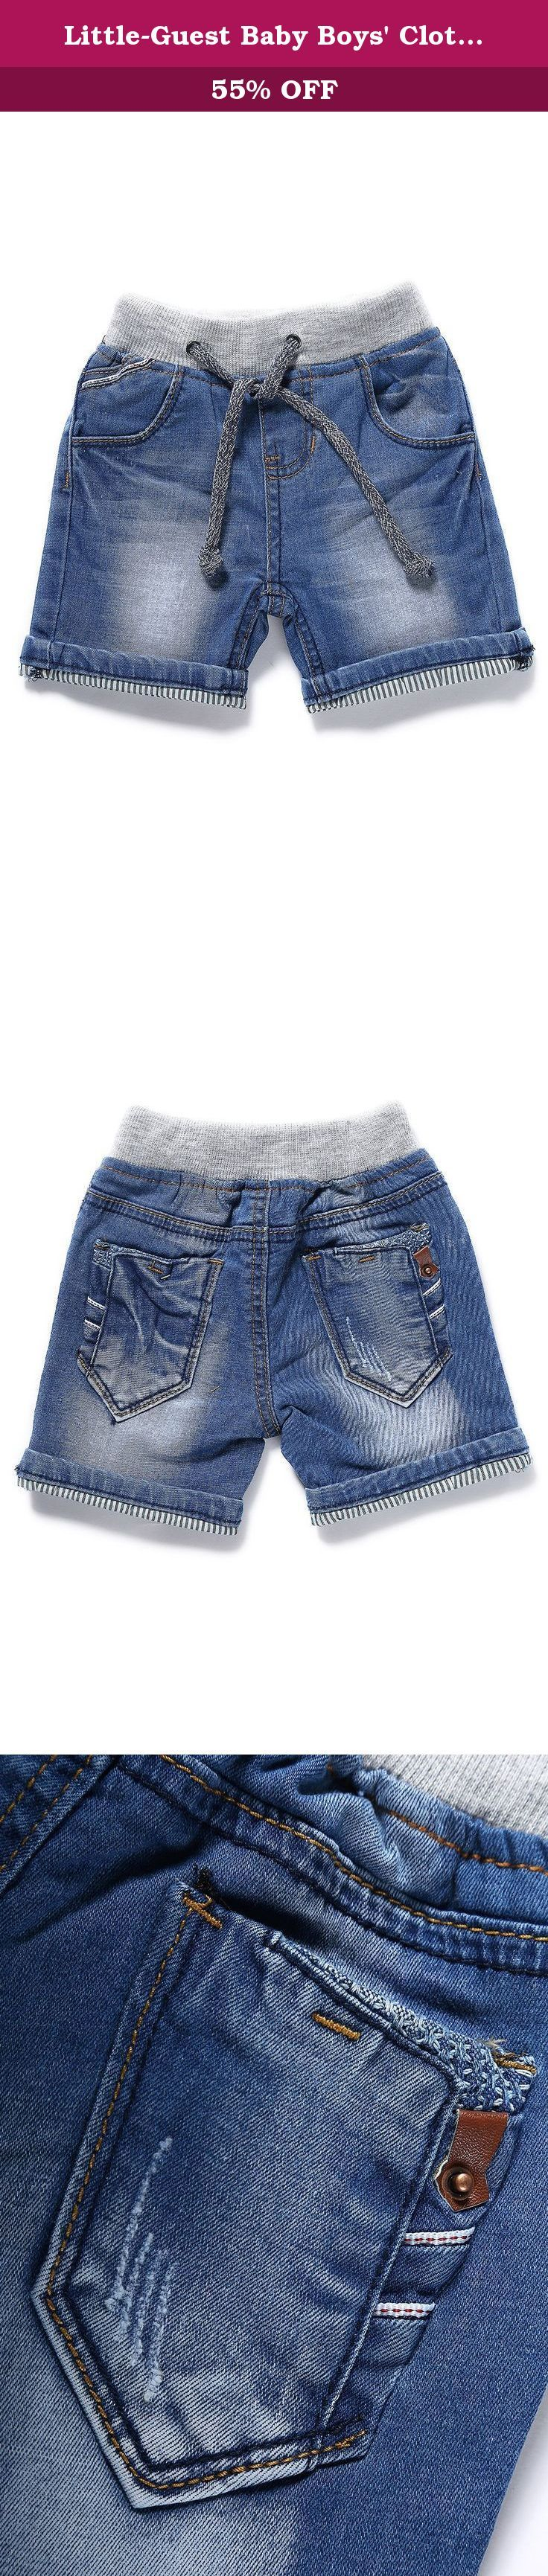 """Little-Guest Baby Boys' Clothes Blue Knee-Length Jeans Shorts B201 (6-9 Months, Light Blue). Pay attention to our Size Chart: 6-9 Months WAIST:48cm/18.7"""" HIP:54cm/21.1"""" BOTTOM:24cm/9.4"""" BODY LENGTH:24cm/9.4"""" 9-12 Months WAIST:50cm/19.5"""" HIP:56cm/21.8"""" BOTTOM:25cm/9.8"""" BODY LENGTH:25cm/9.8"""" 12-18 Months WAIST:53cm/20.7"""" HIP:59cm/23"""" BOTTOM:26.5cm/10.3"""" BODY LENGTH:26.5cm/10.3"""" 18-24 Months WAIST:54cm/21.1"""" HIP:60cm/23.4"""" BOTTOM:27cm/10.5"""" BODY LENGTH:27cm/10.5"""" 24-30 Months…"""